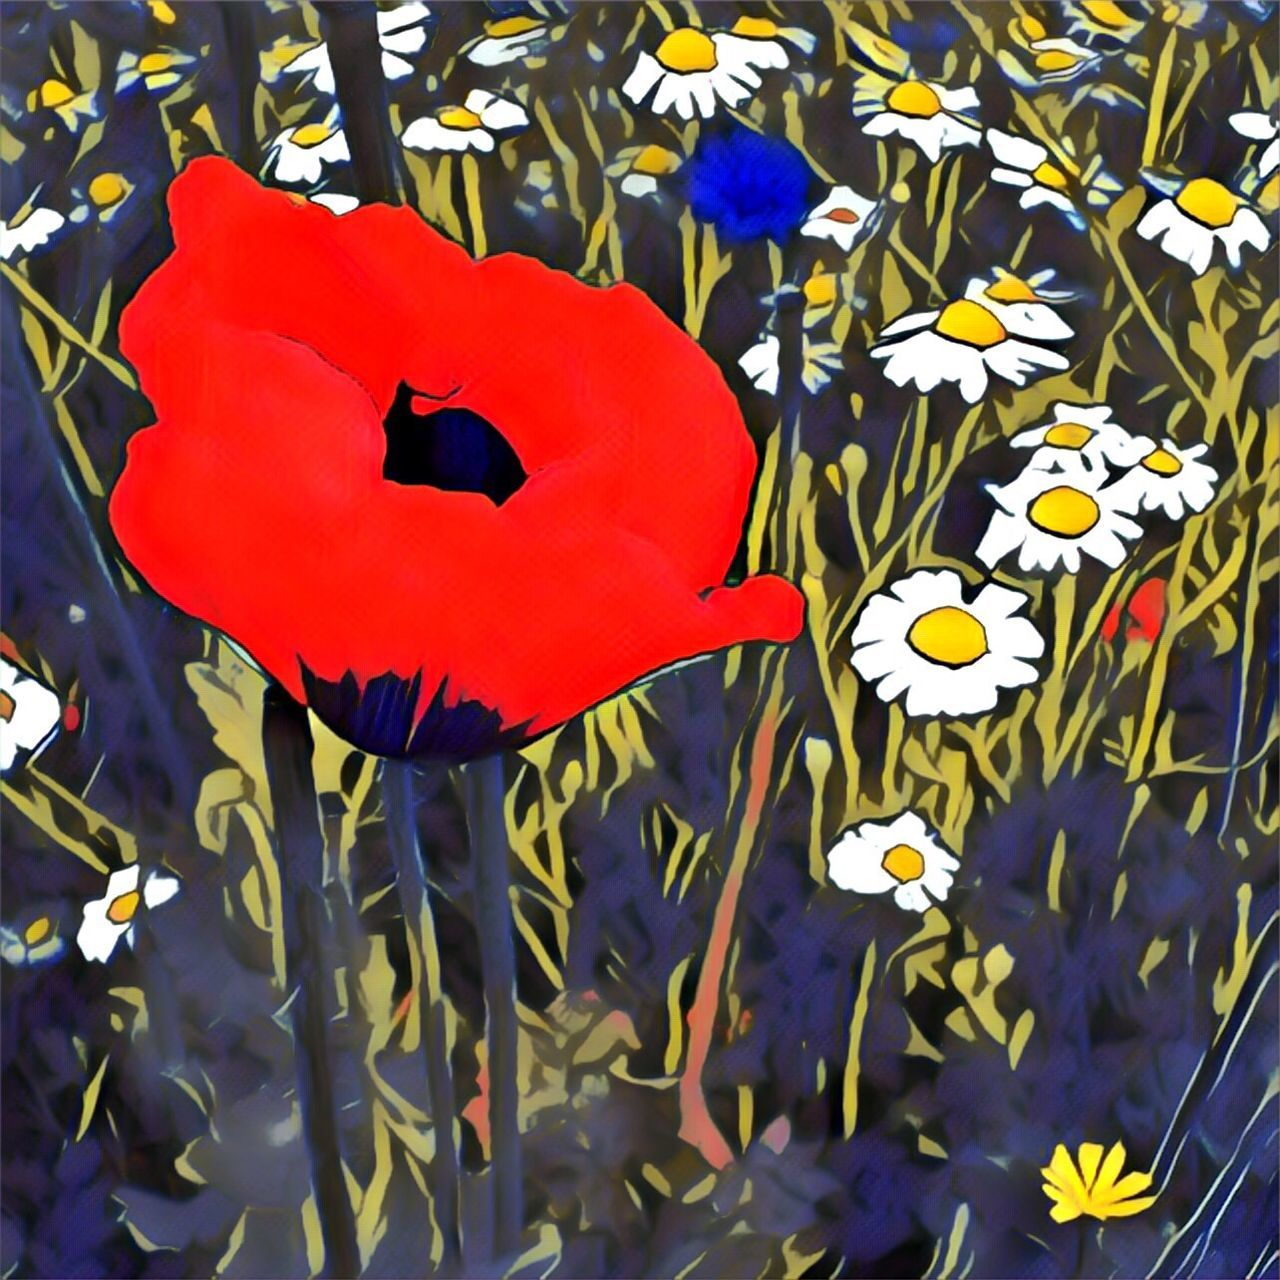 Flower Red Nature Petal Plant Flower Head Blooming Daisies Wildflowers Graphic Illustration Painterly Photo Art Iphone6s ShotOnIphone IPhoneography Poppy